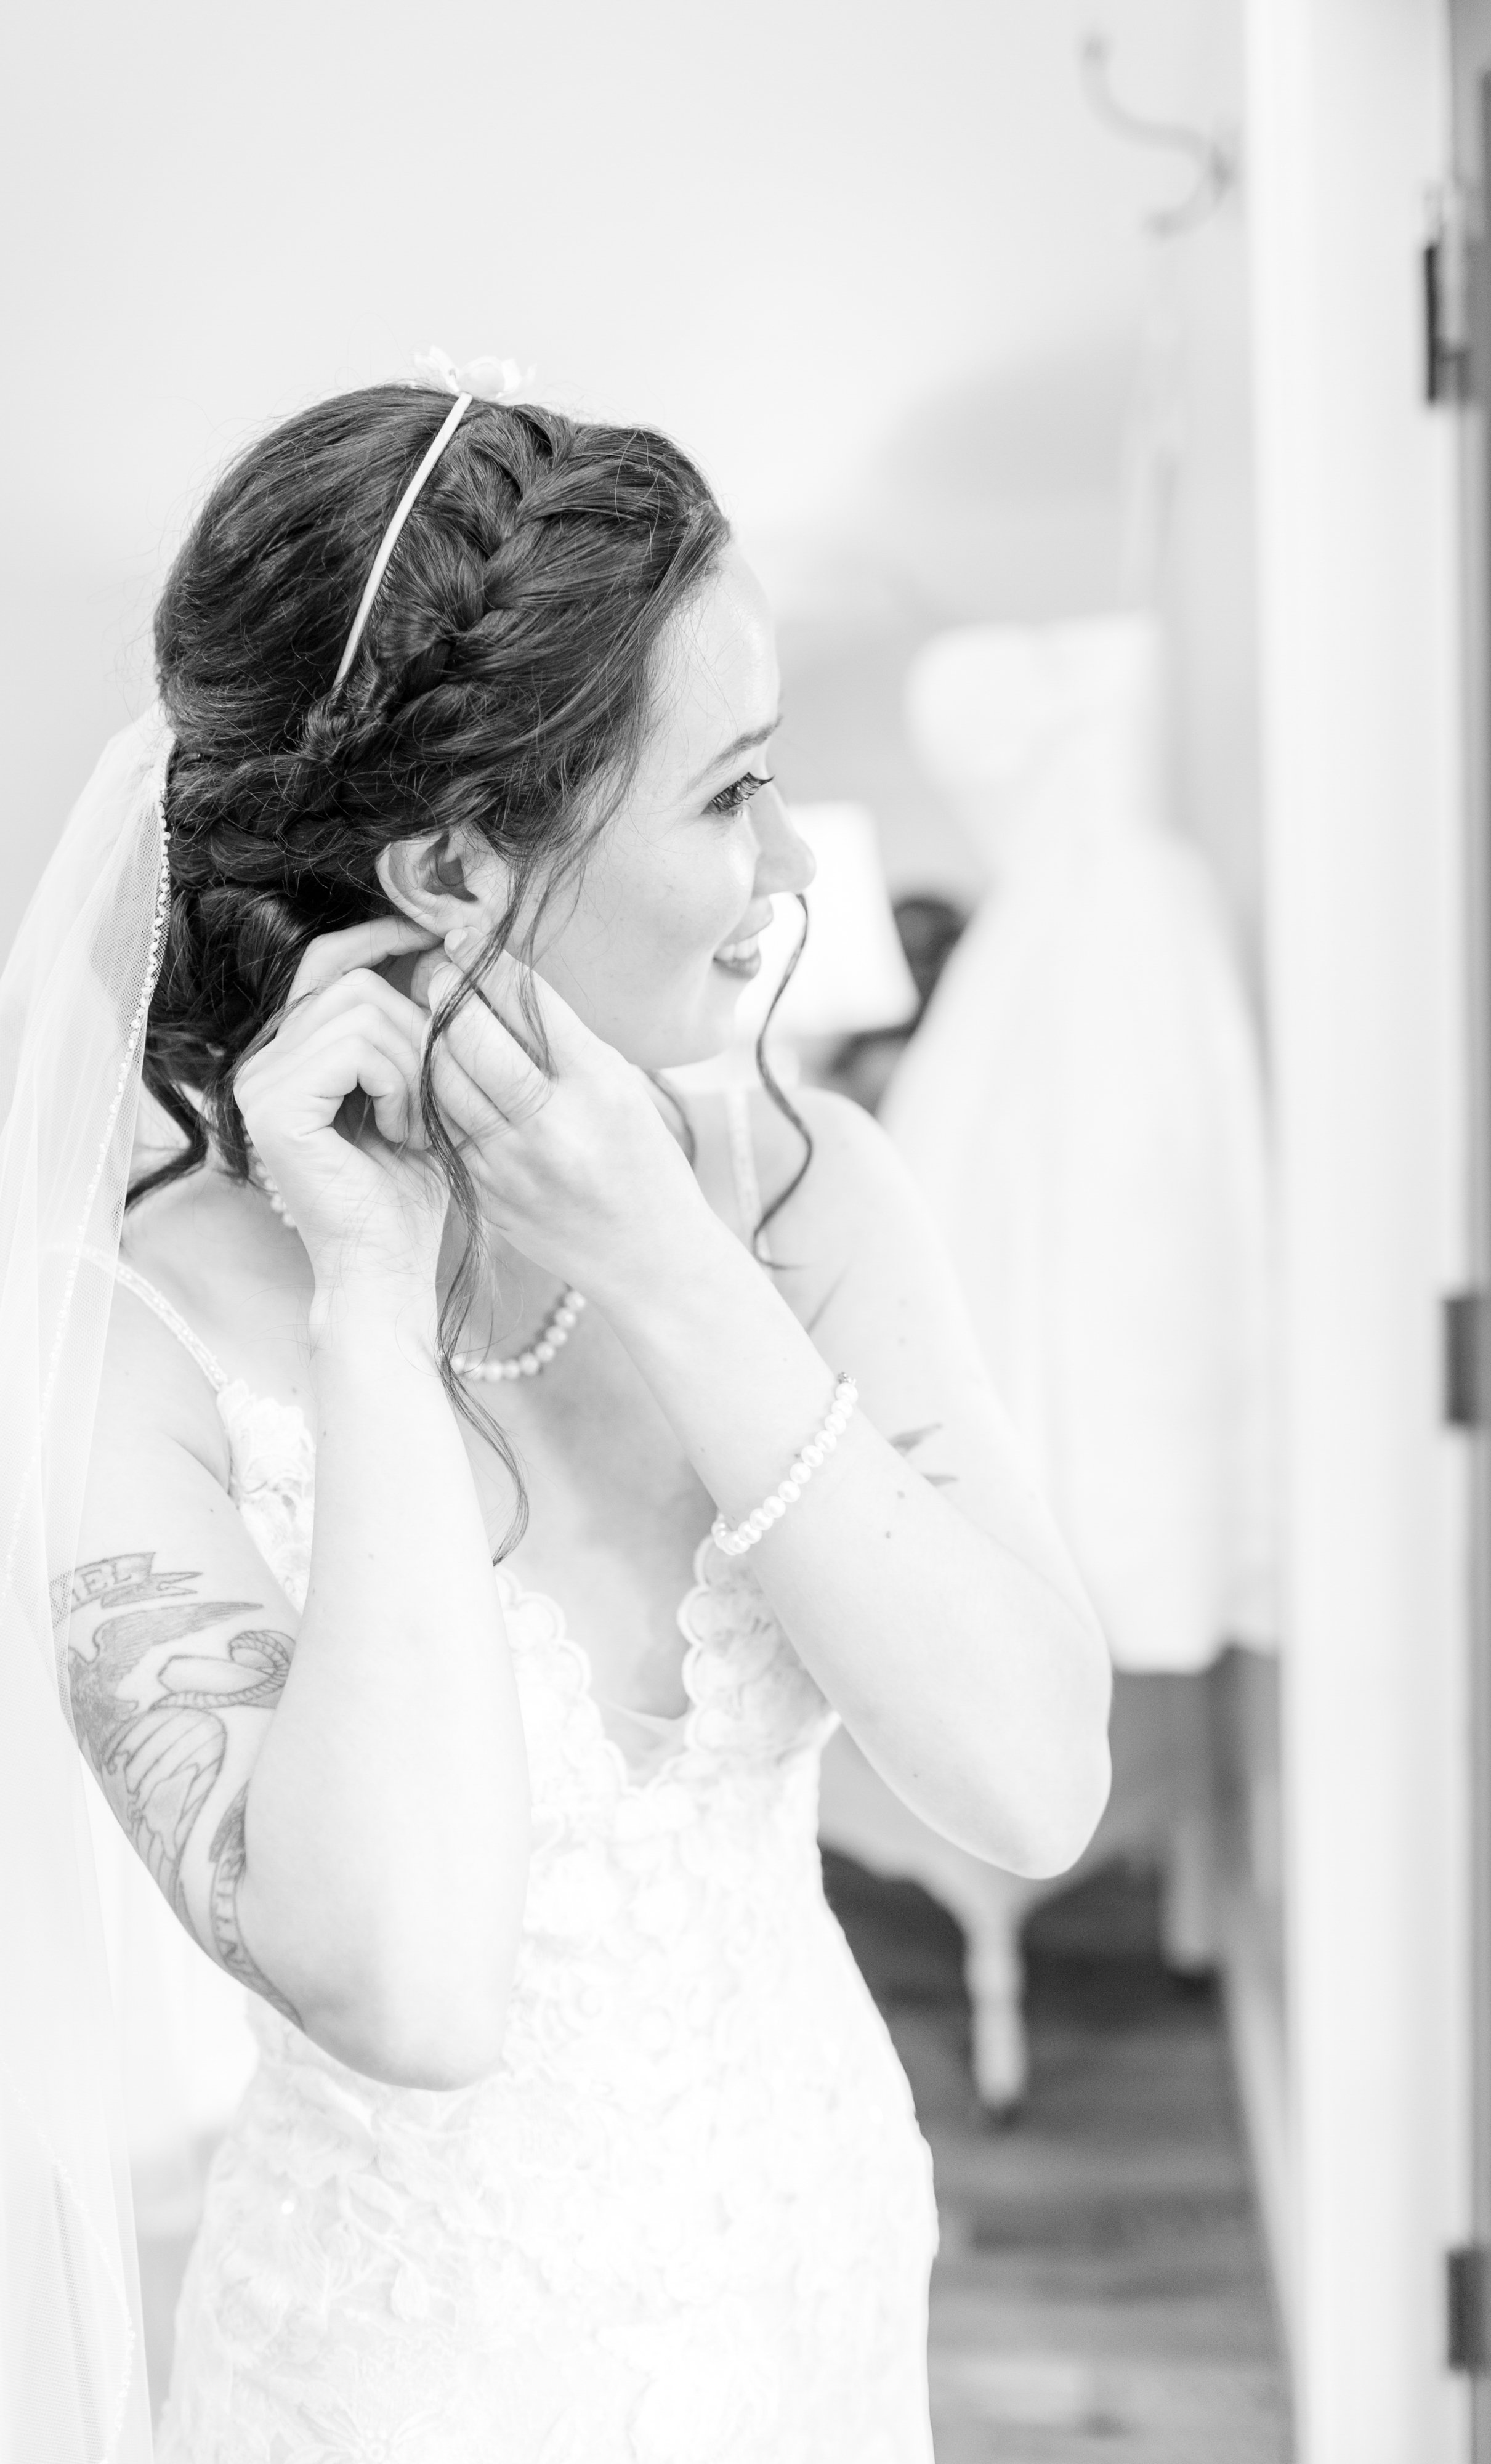 Wedding DJ Services in York County